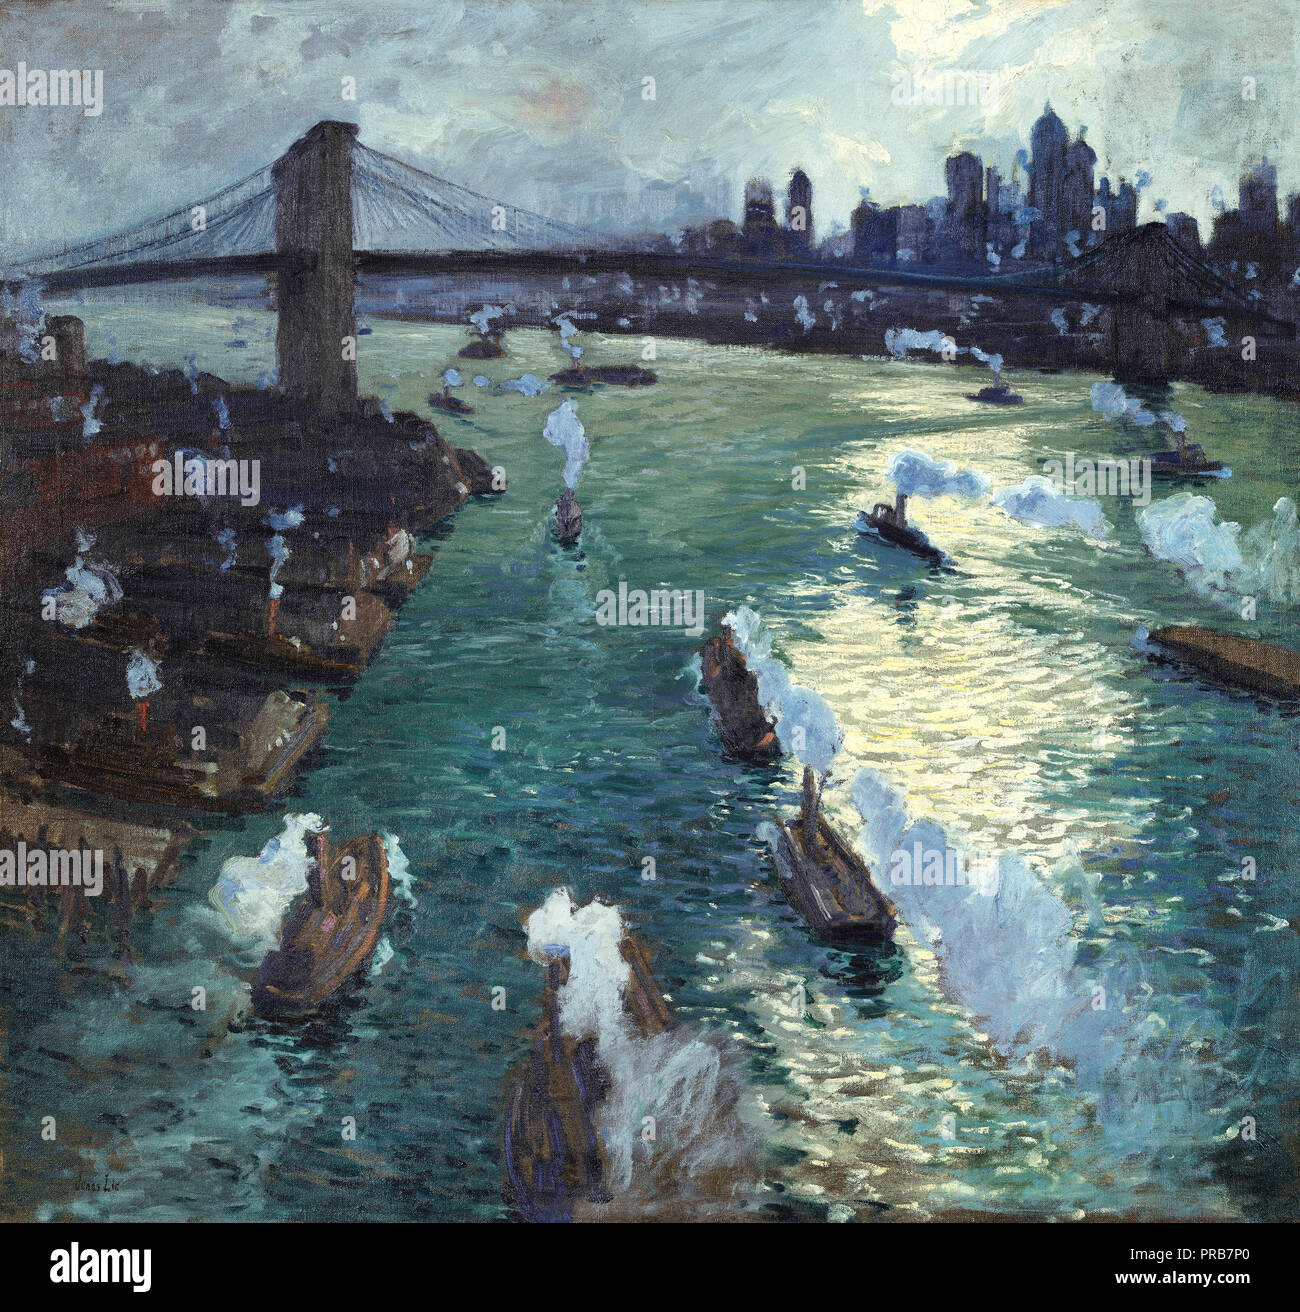 Jonas Lie, Path of Gold 1914 Oil on canvas, High Museum of Art, USA. - Stock Image